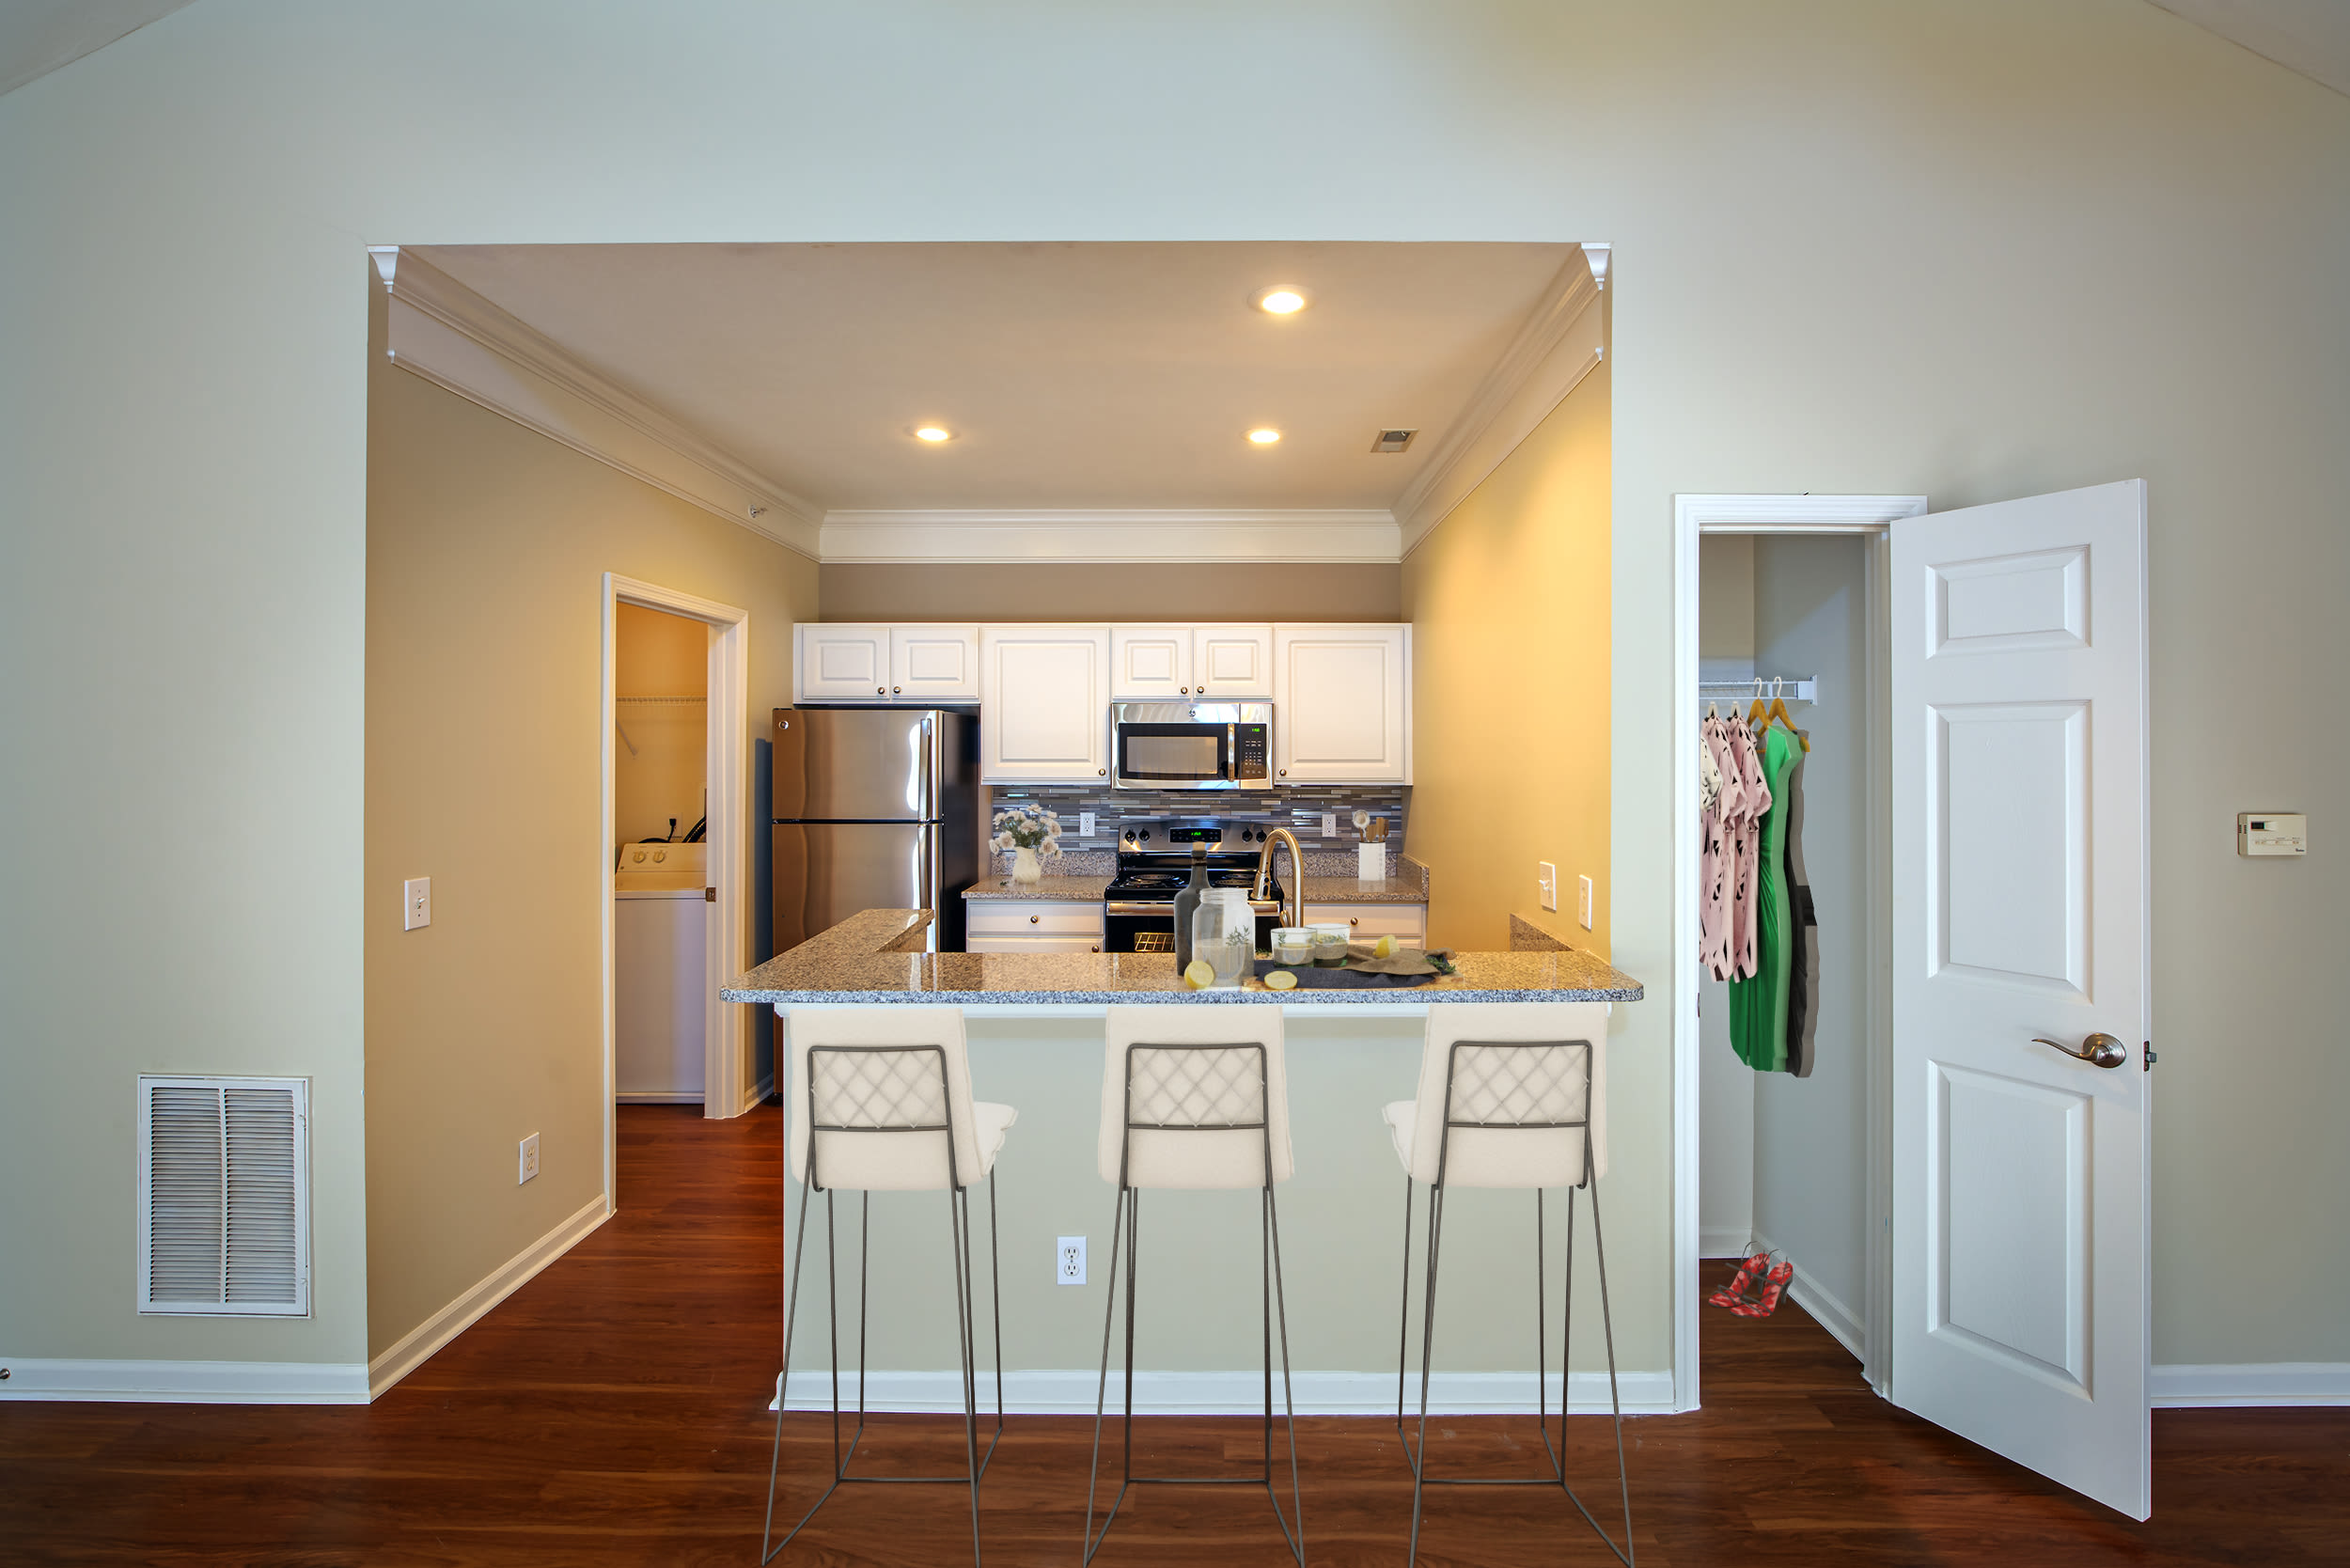 Breakfast bar seating at Christopher Wren Apartments & Townhomes in Wexford, Pennsylvania